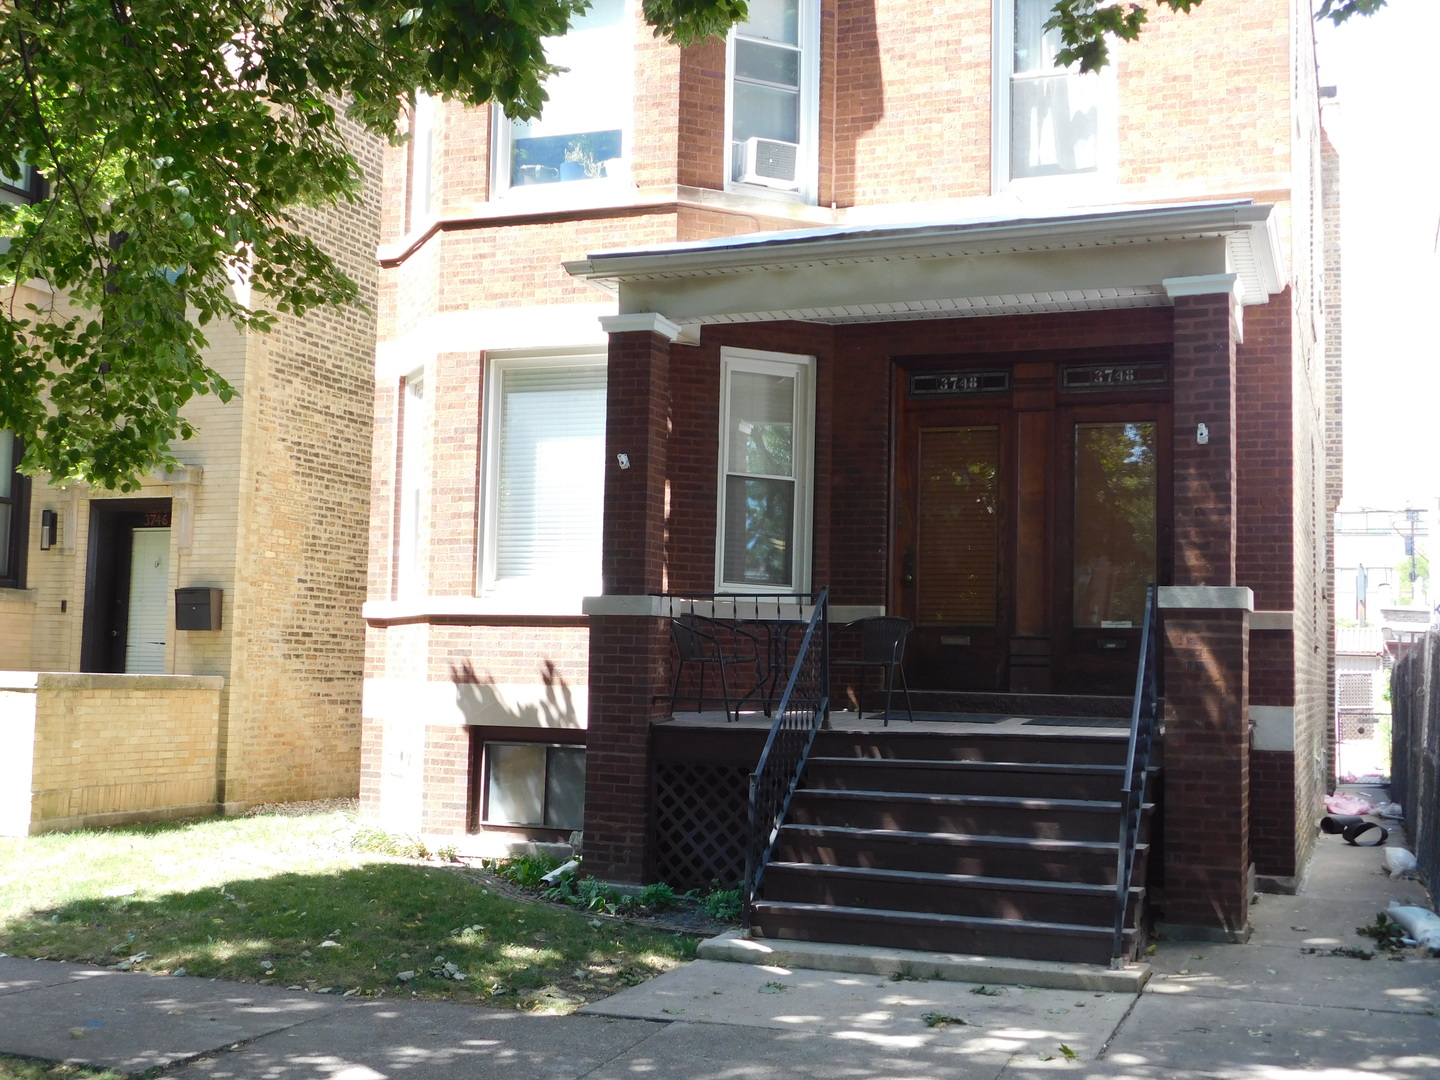 AMAZING RESIDENCE, INVESTMENT, DEVELOPMENT OR LIVE/RENT OPPORTUNITY WITH THIS WONDERFUL ALL BRICK 2-